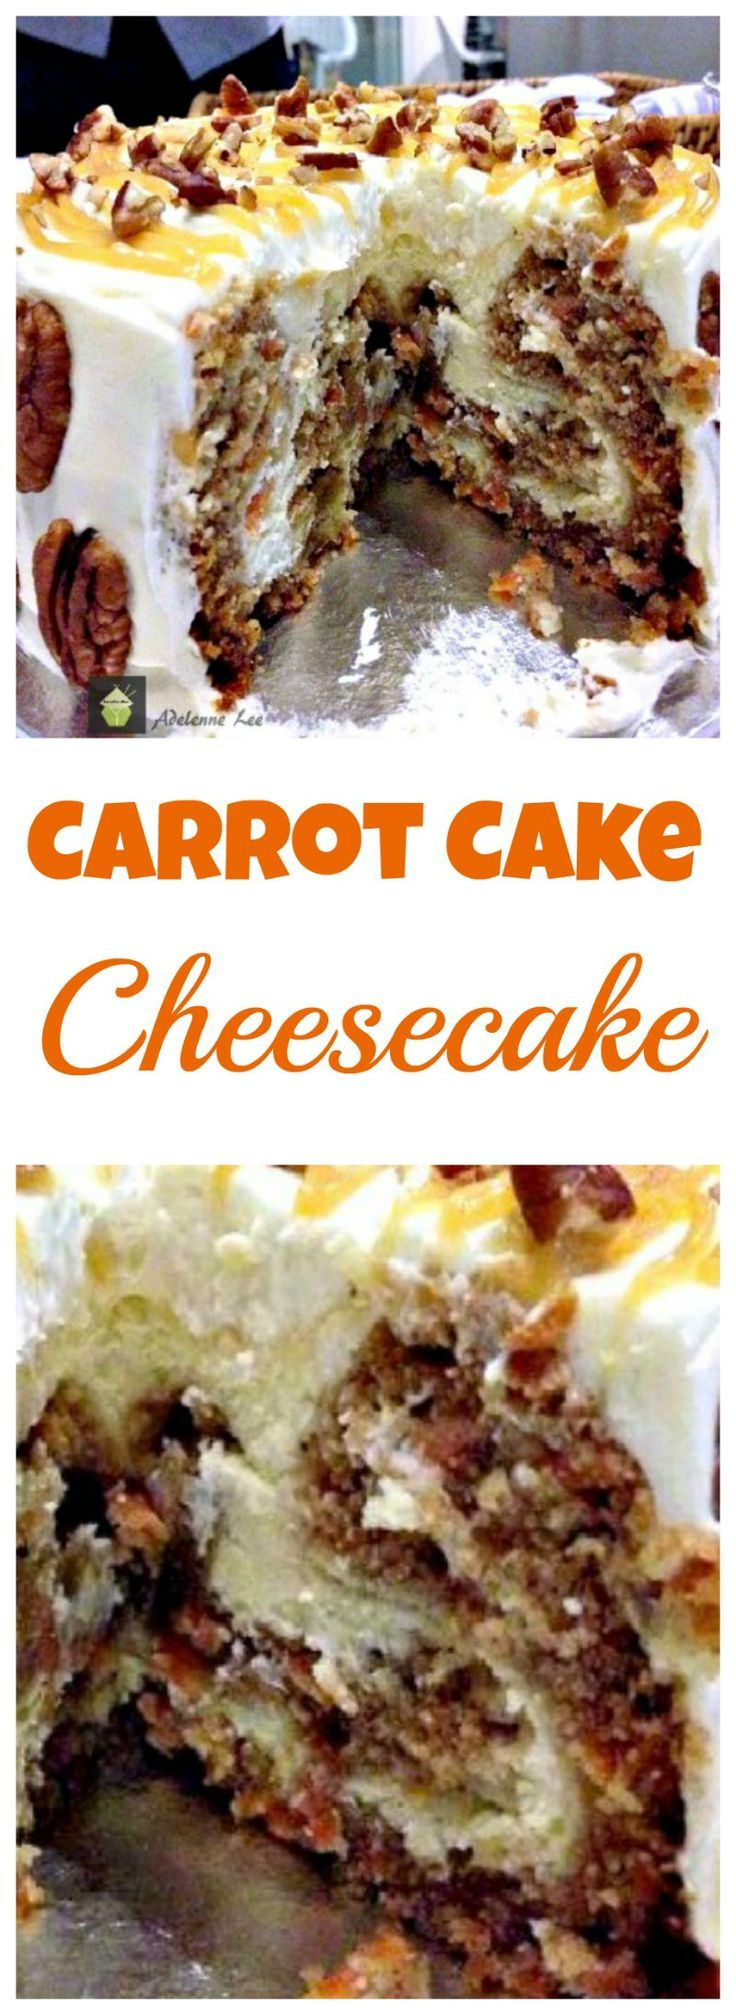 Carrot Cake Cheesecake. Simply a Show Stopping Wow! A great Dessert! | Lovefoodies.com